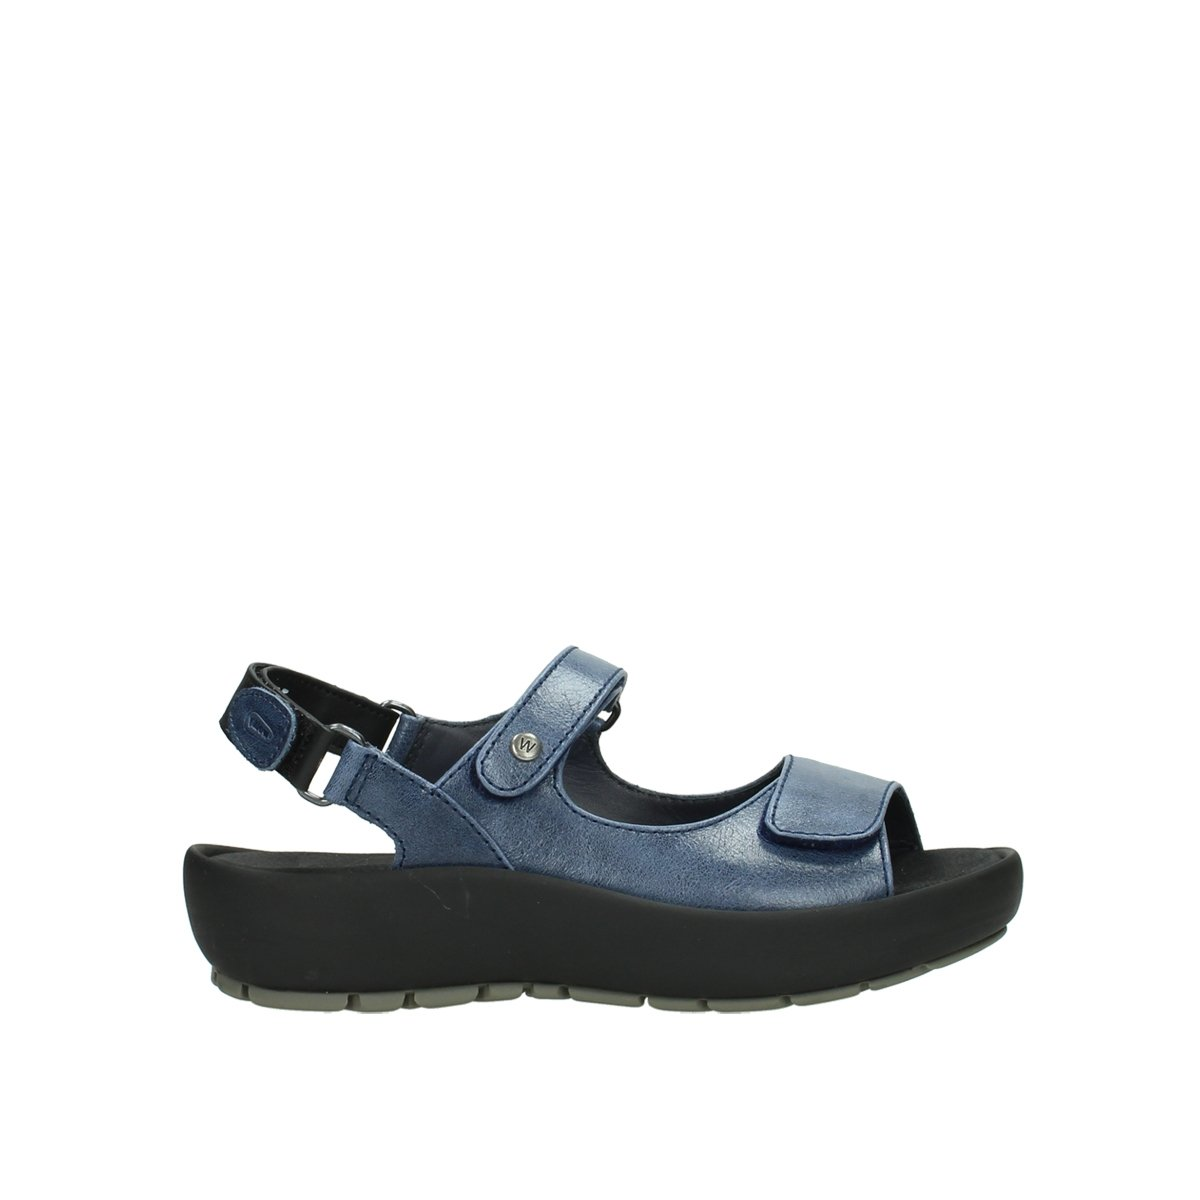 Wolky Comfort Rio B07C8HL9FF 42 M EU|30800 Blue Leather